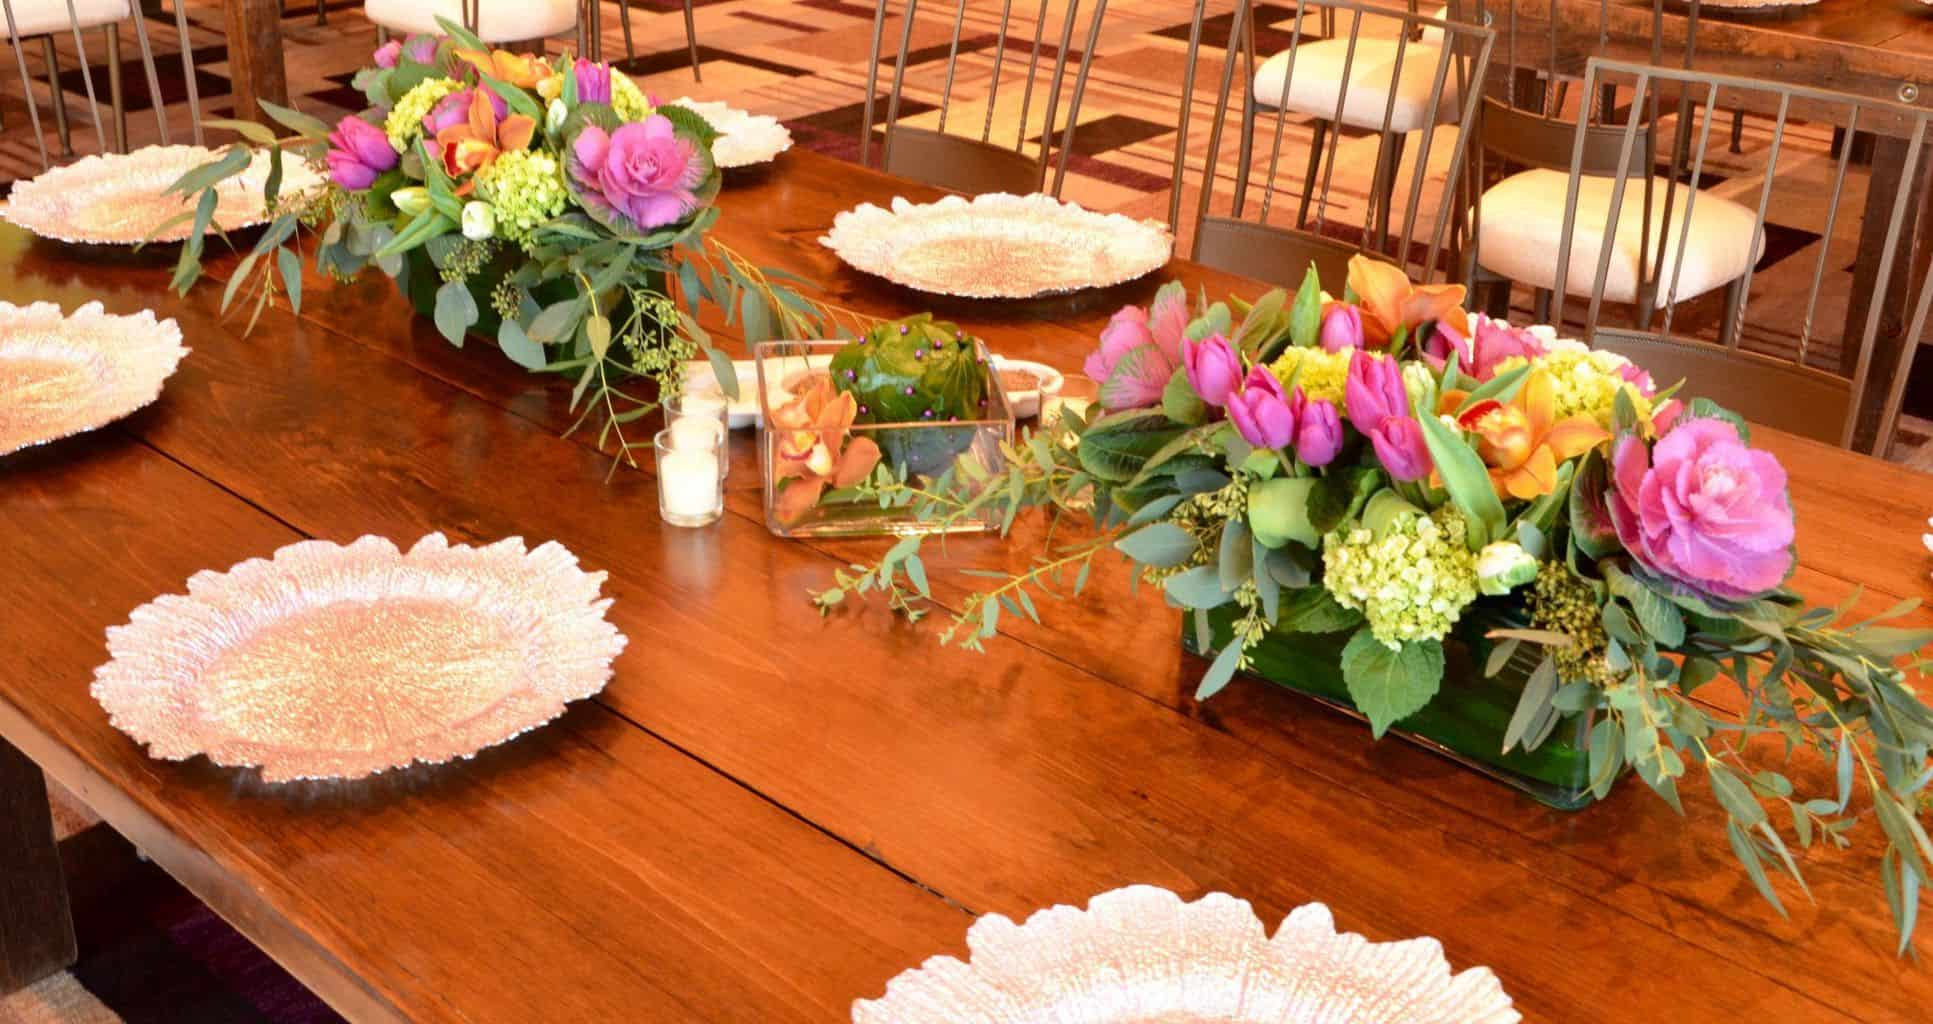 Spring centerpieces for a farm table